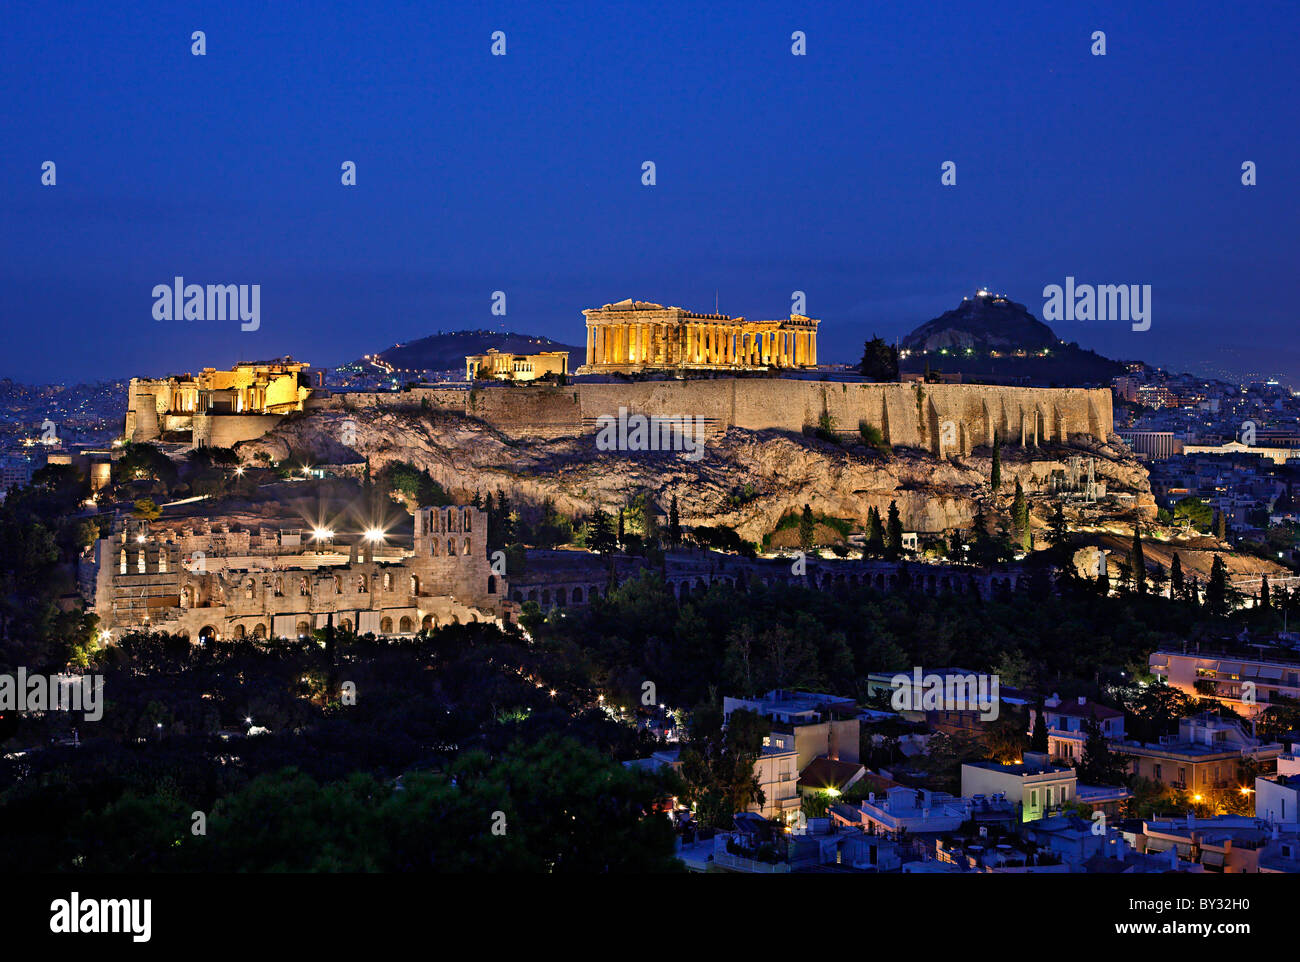 The Acropolis of Athens in the 'blue' hour - Stock Image